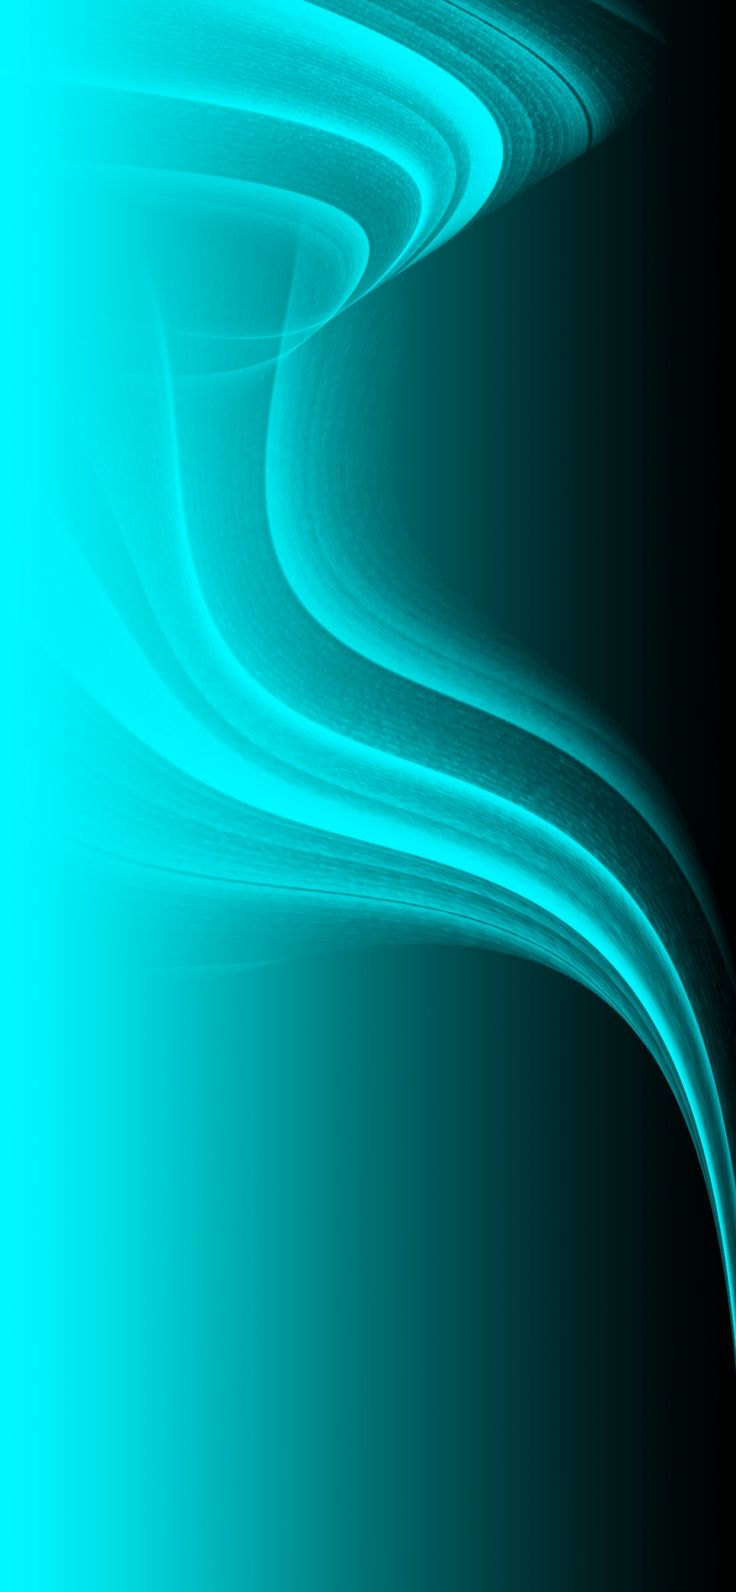 Abstract HD Wallpapers 532269249710985459 1